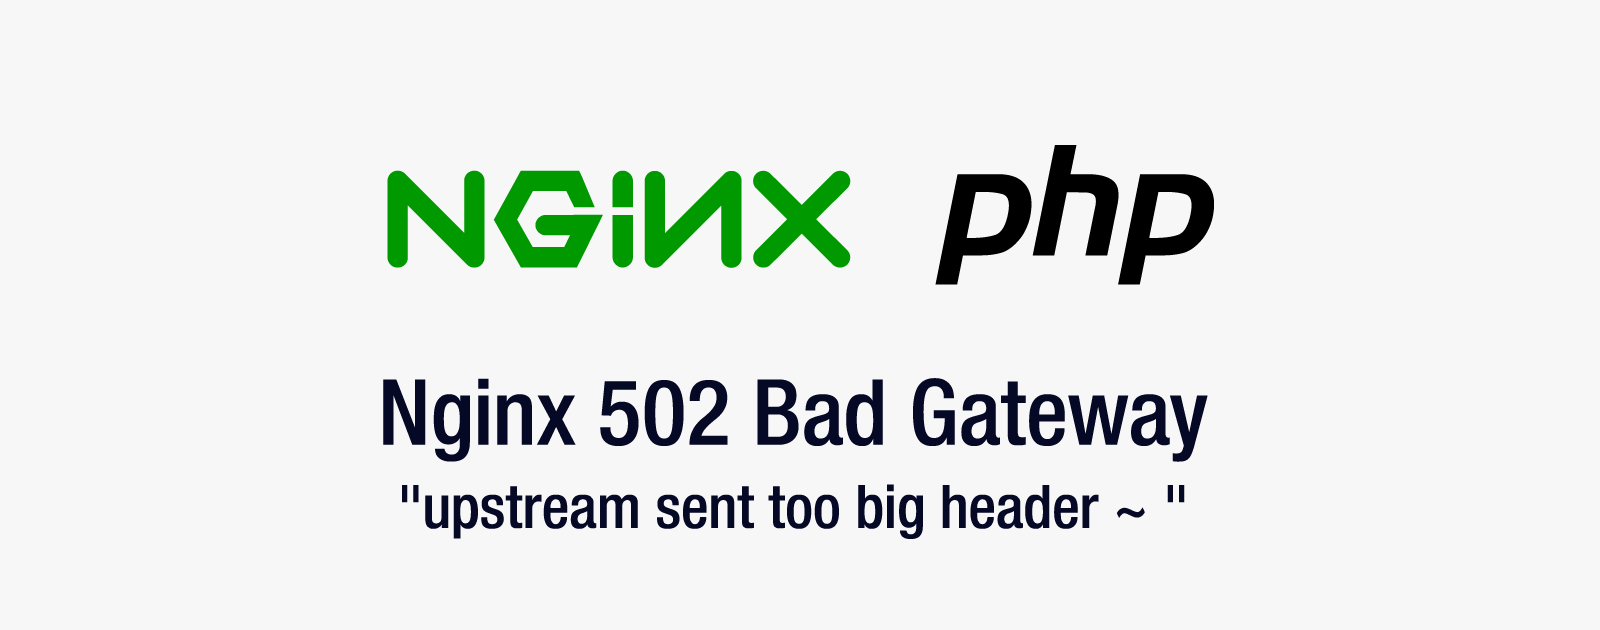 Nginxで502 Bad Gatewayの原因が「upstream sent too big header~」の場合の対処法